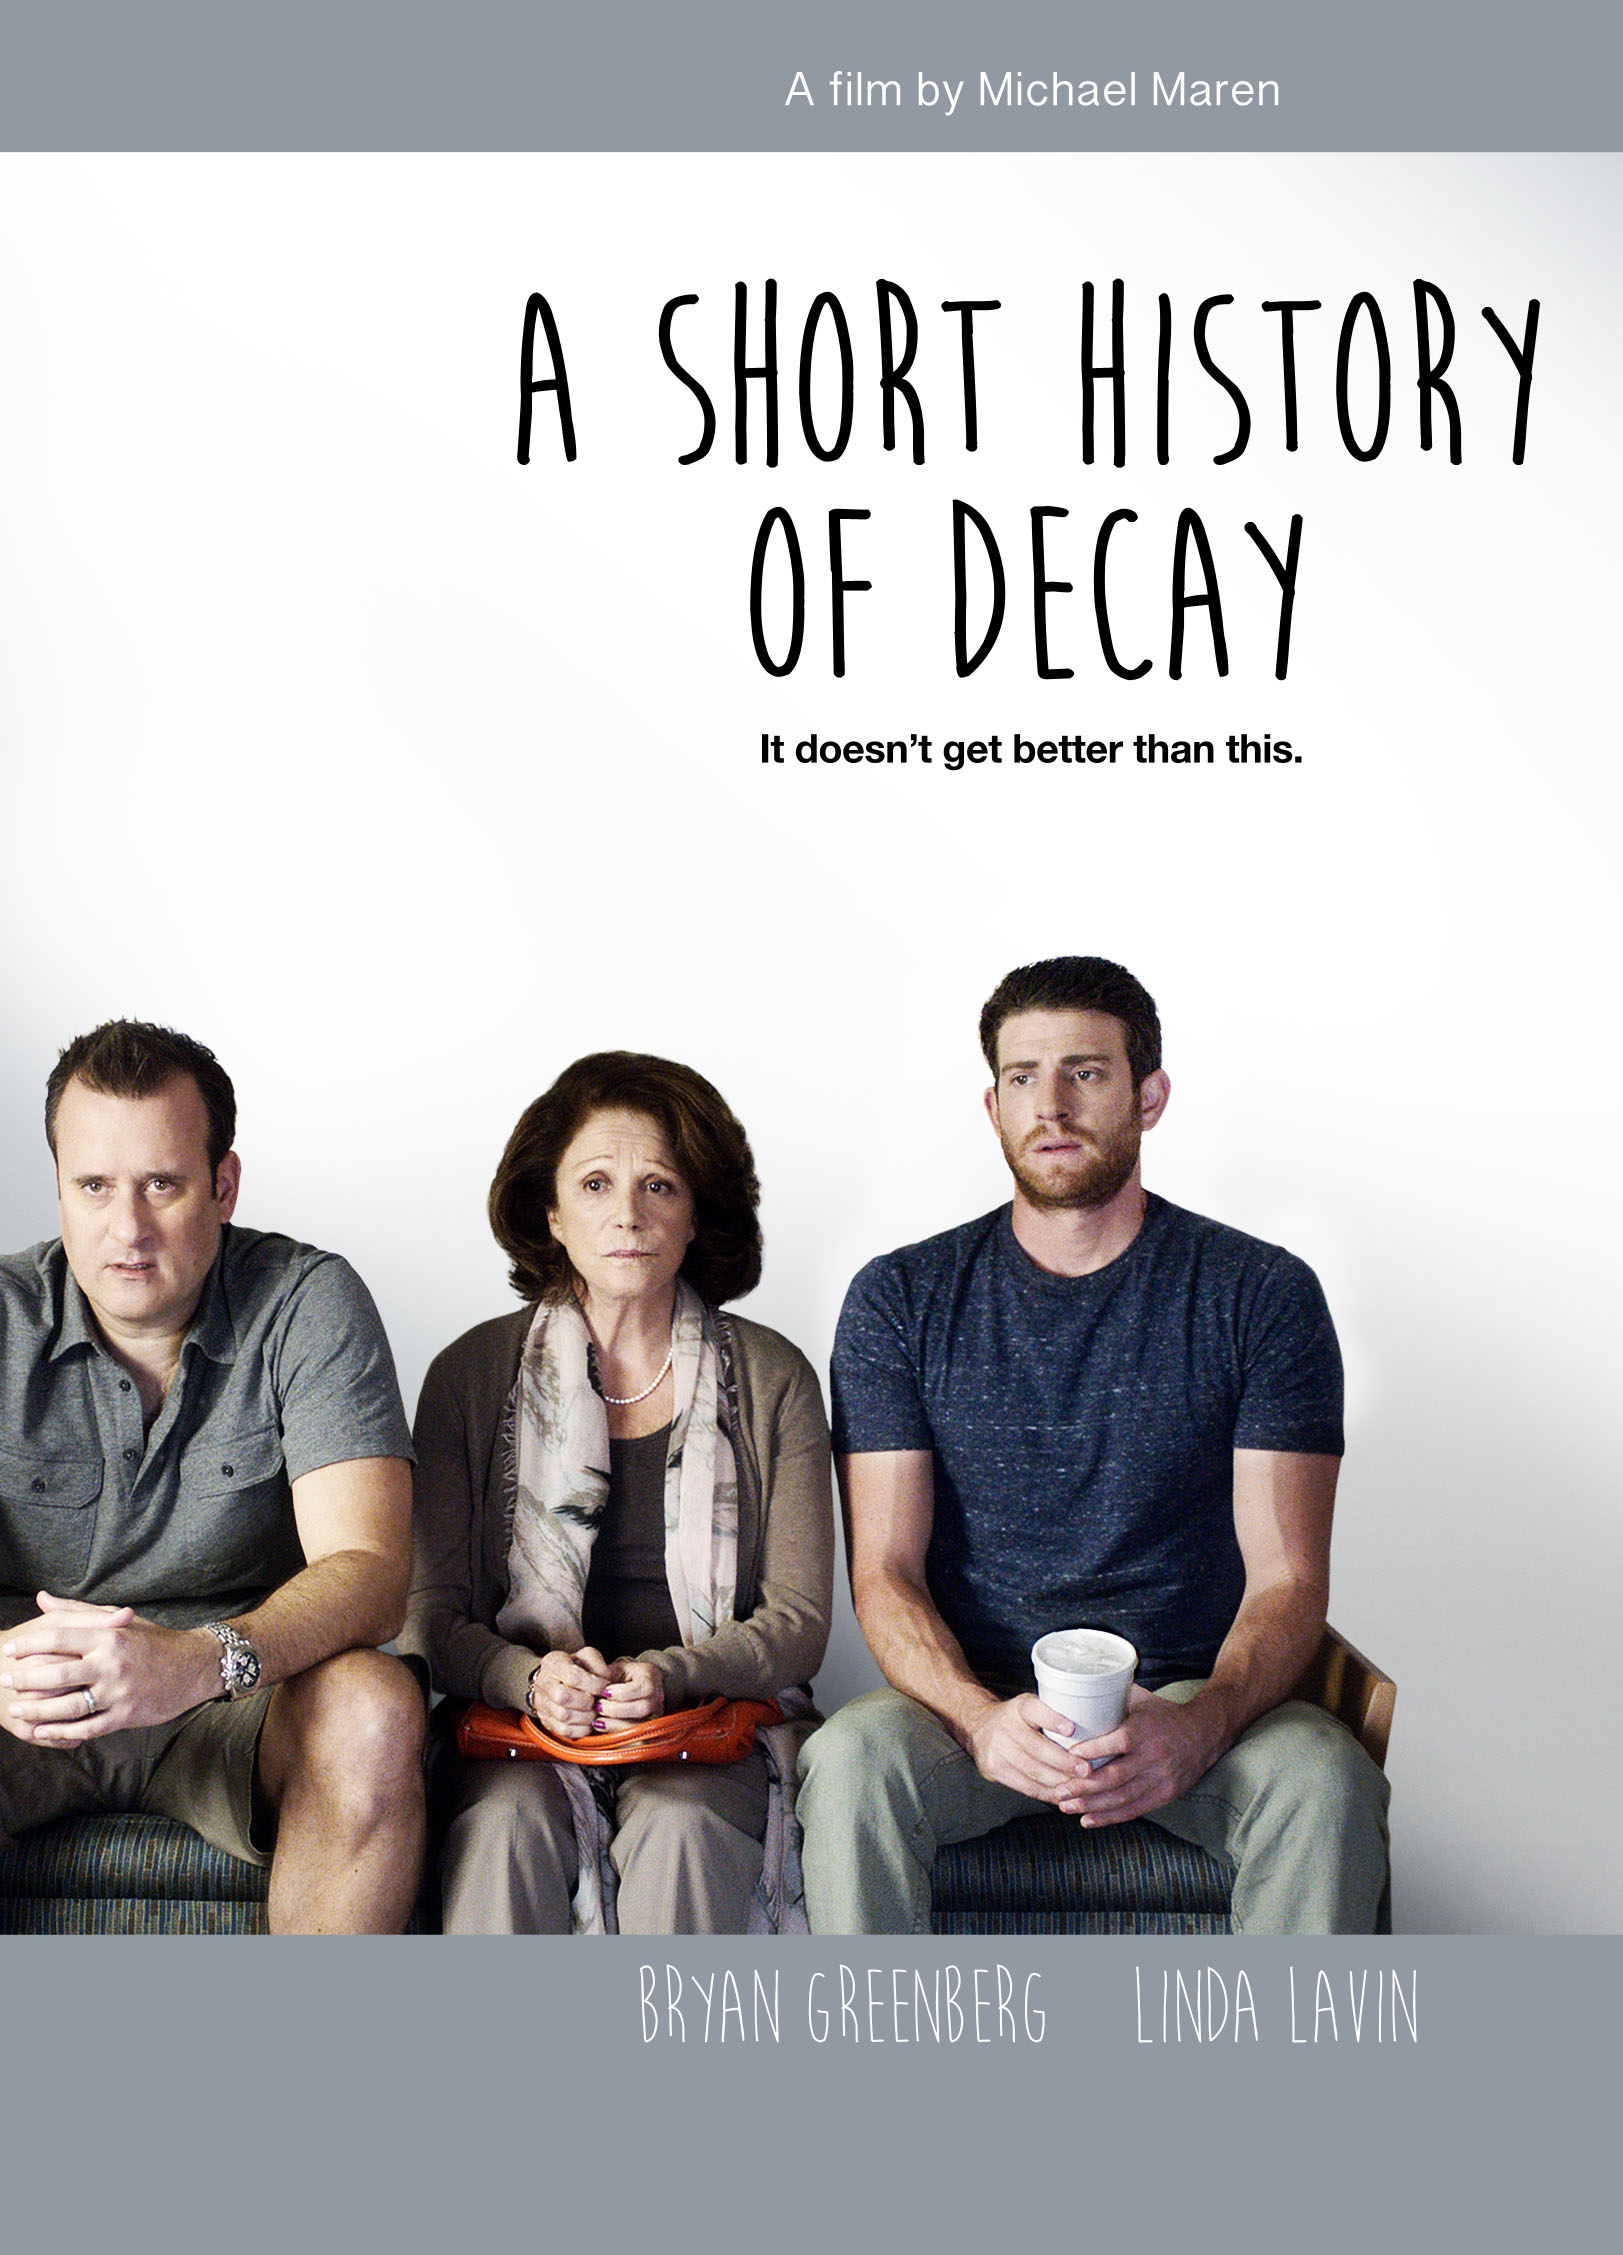 Short History 2D Exclusive: Clip from A Short History of Decay Gives Insight into Dark Comedy About Life, Love and Parents